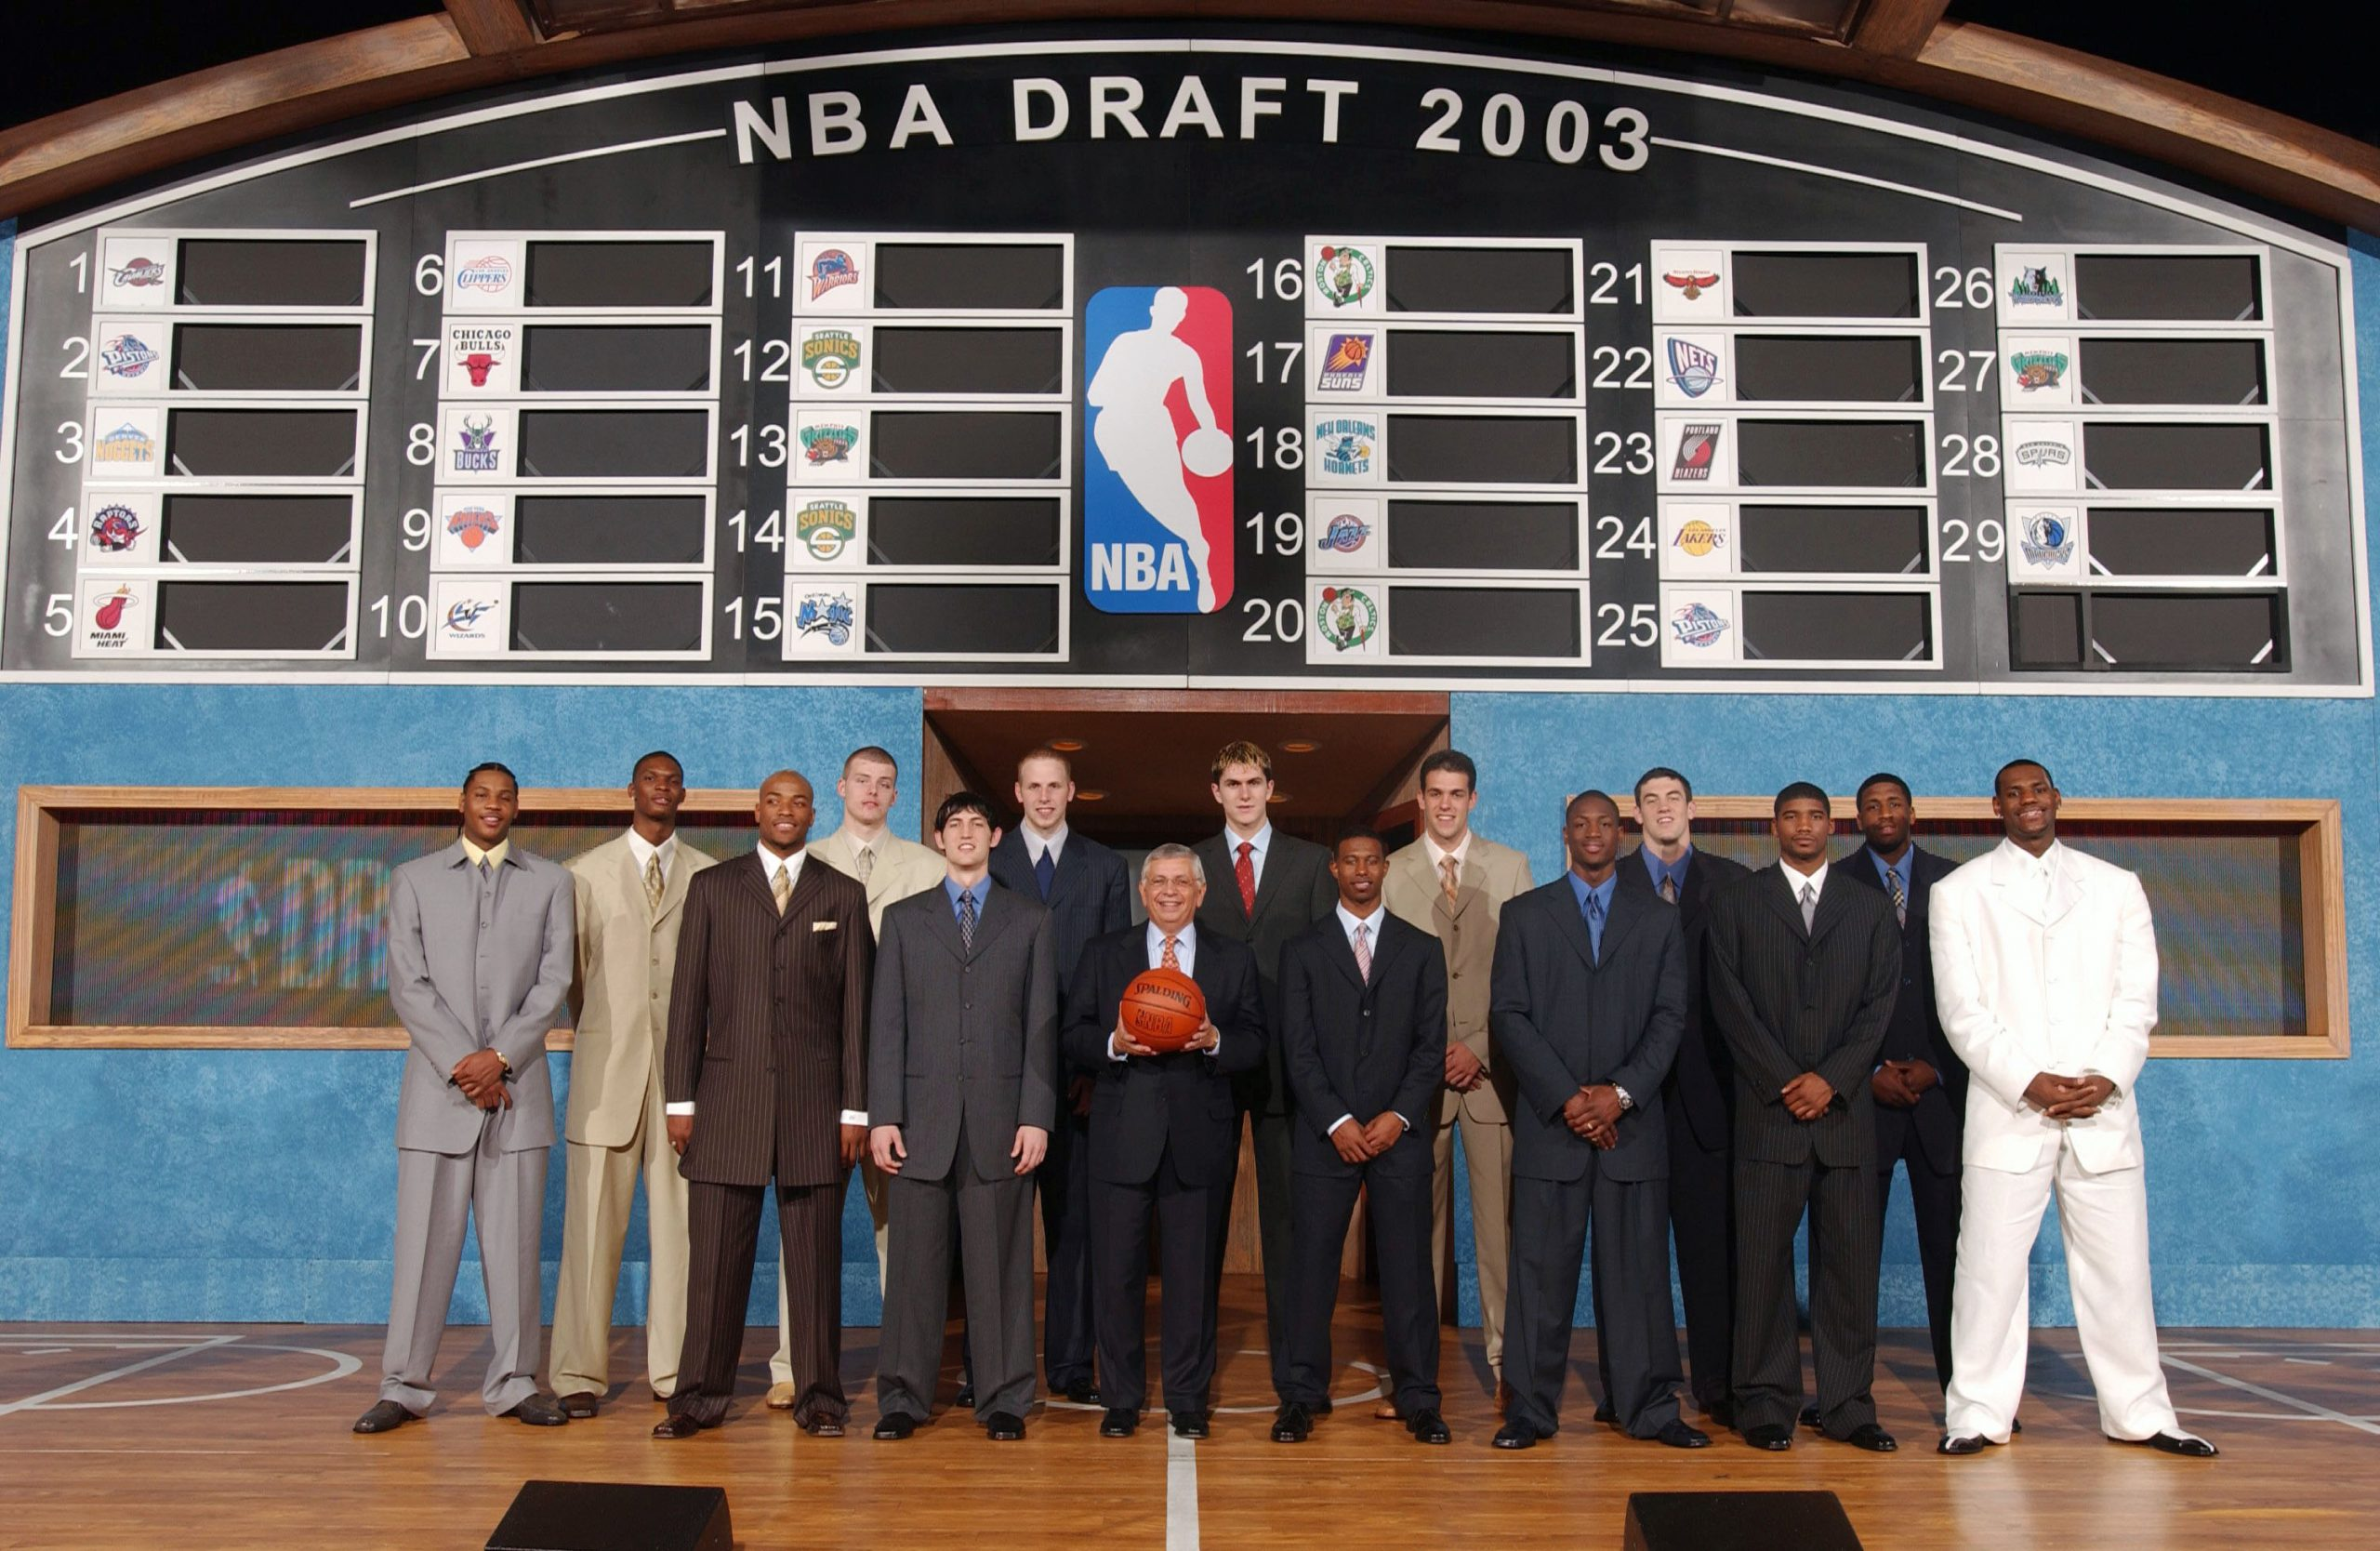 NBA Draft 2003